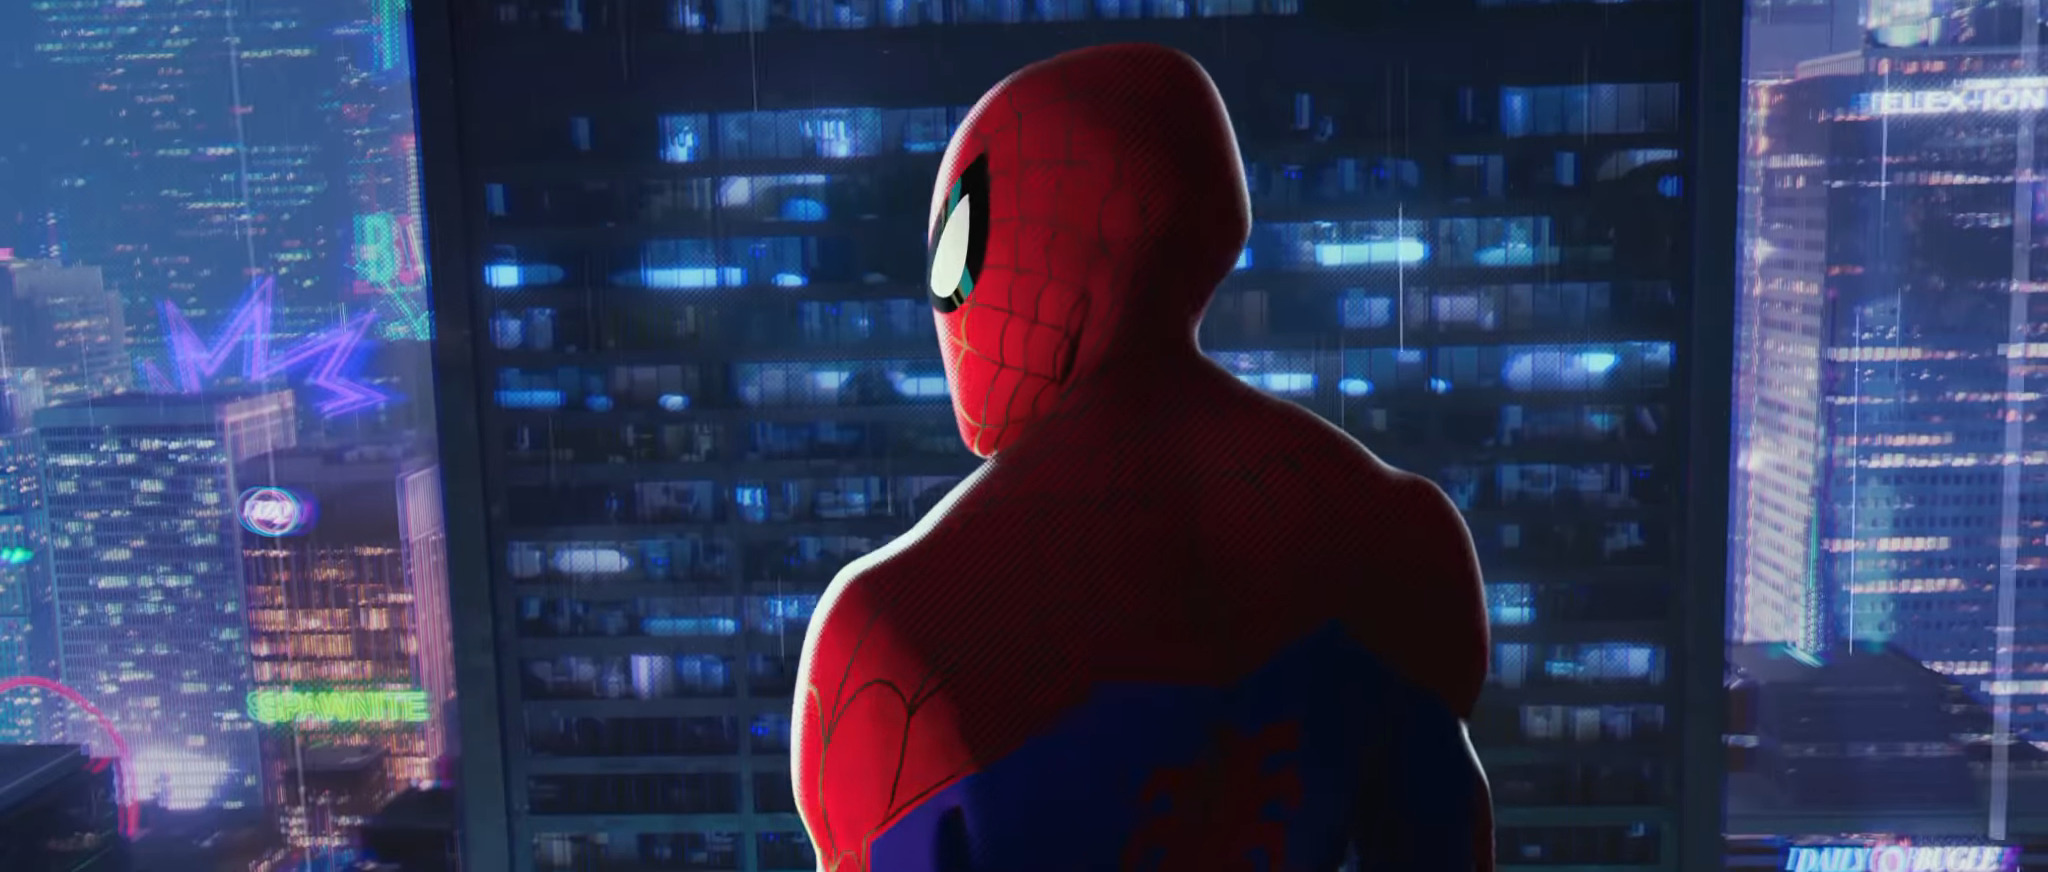 spider-man-into-the-spider-verse-trailer-image-2 L'incredibile arte dietro Spider-Man into the Spider-Verse